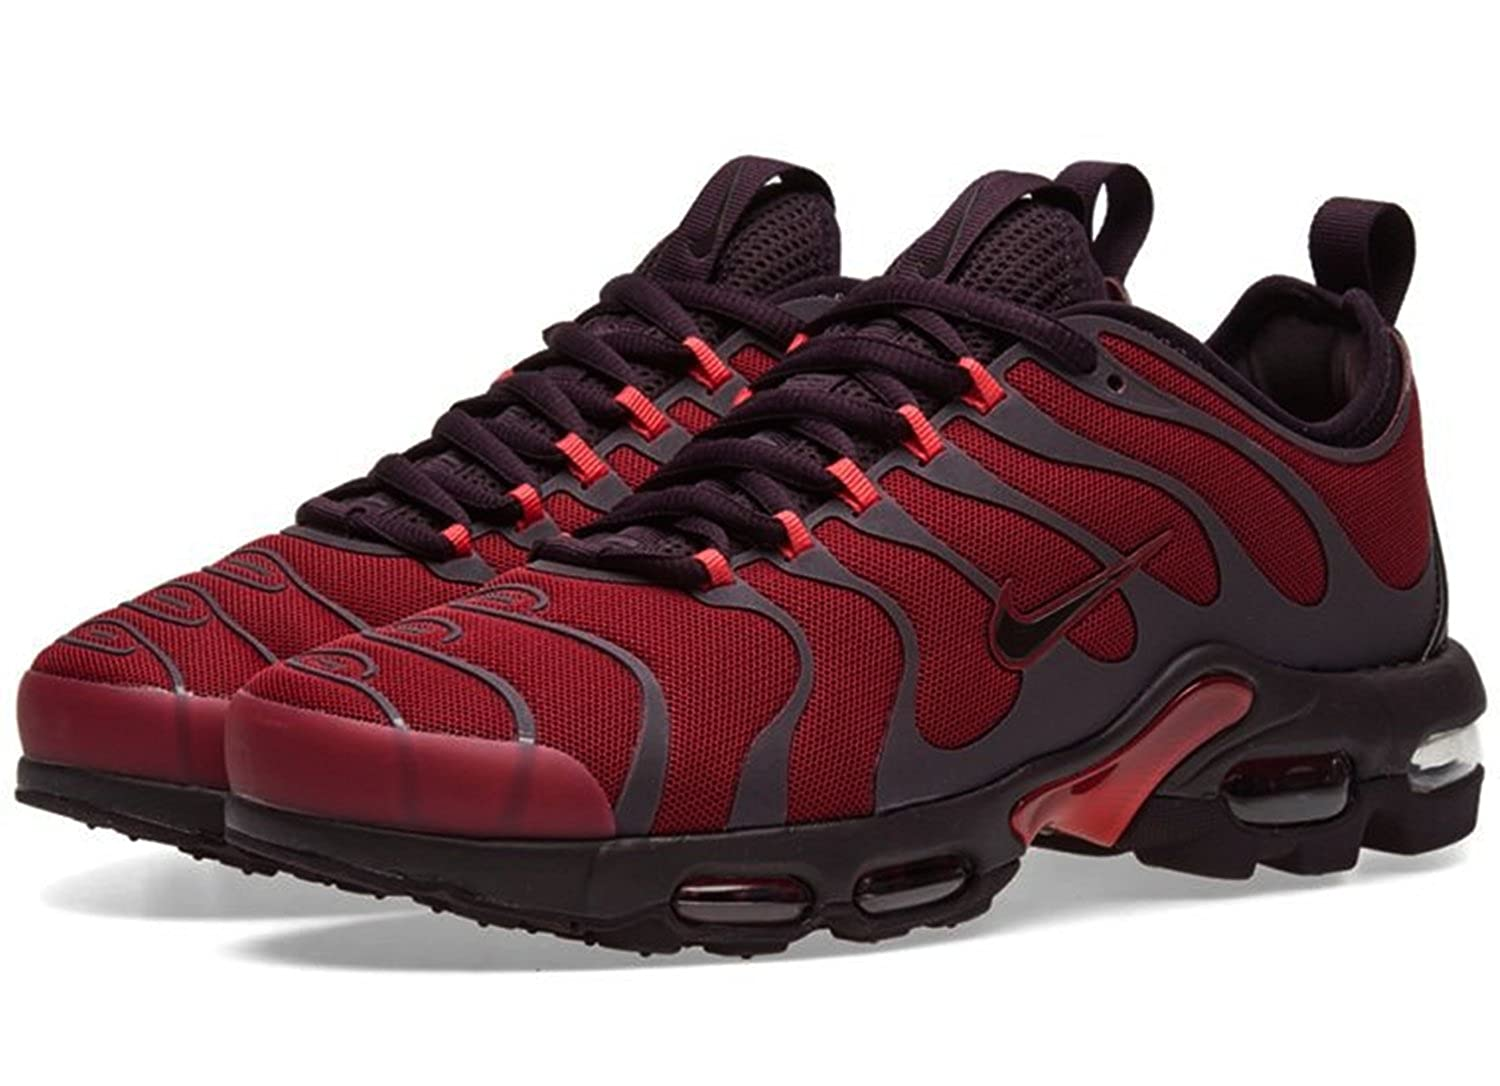 657422bab7ec Nike Air Max Plus TN Ultra Lifestyle Casual Sneakers Noble red Port Wine  New 898015-601 - 14  Amazon.co.uk  Shoes   Bags